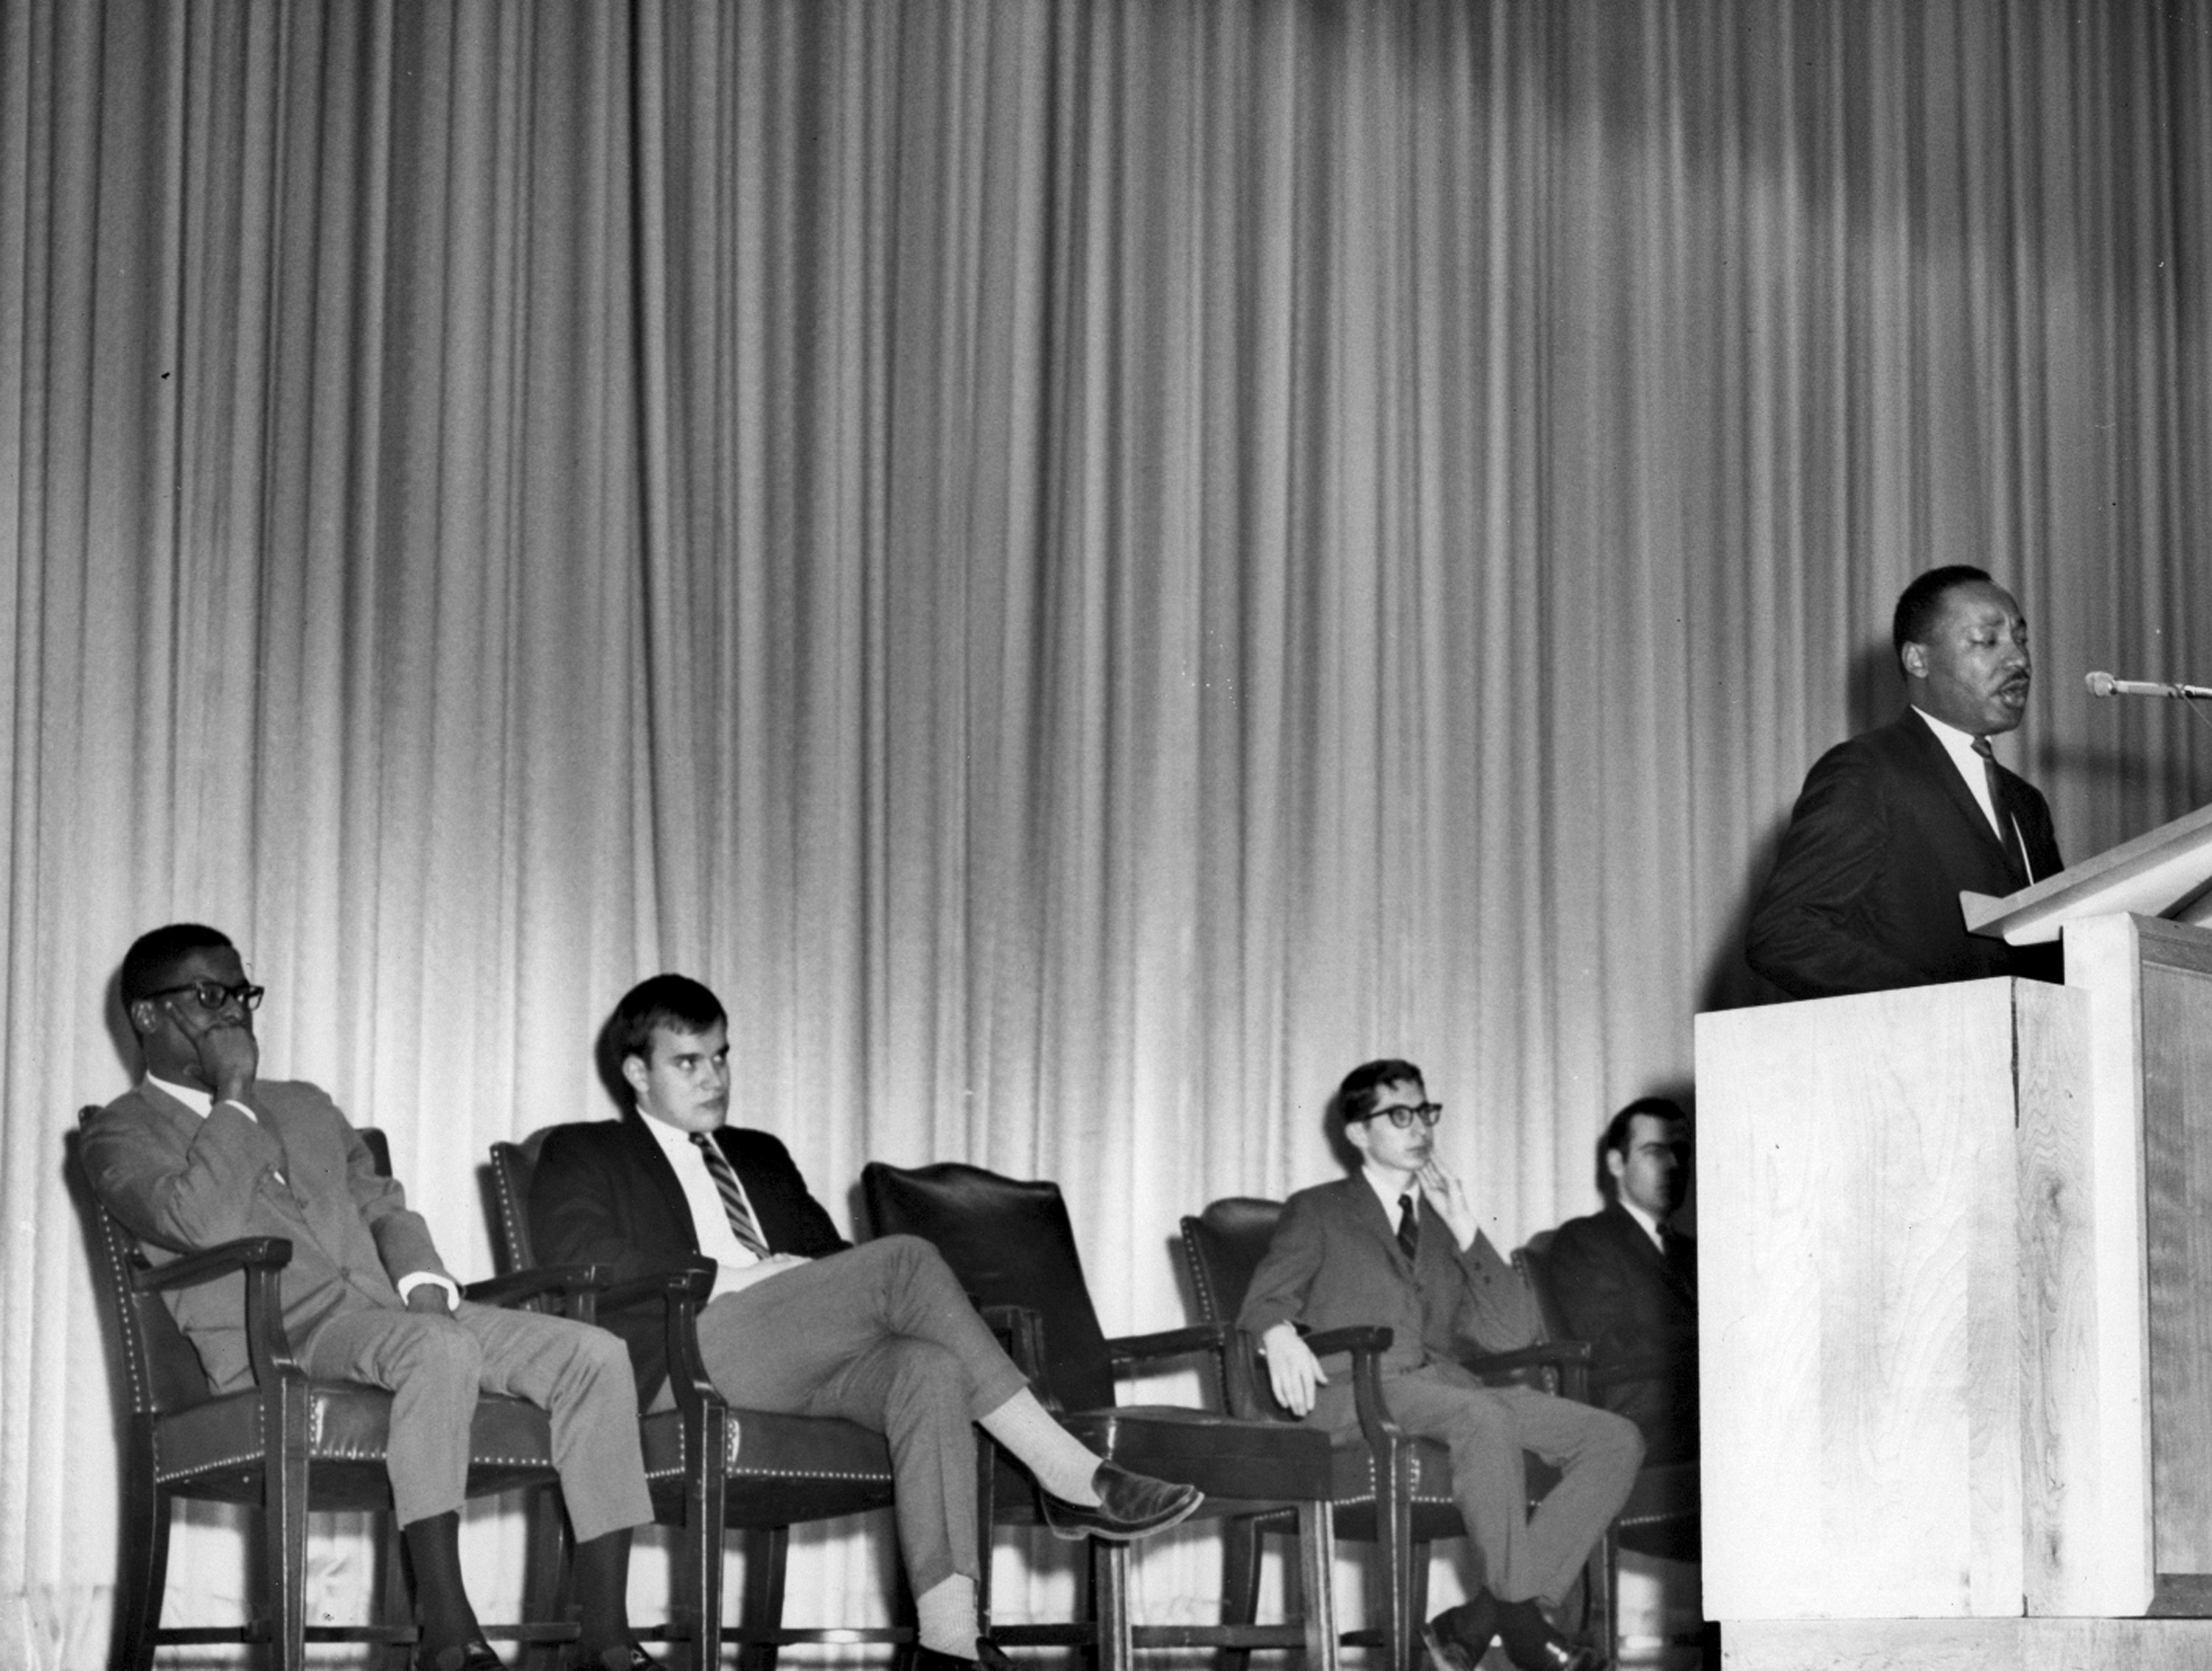 Dr Martin Luther King Jr At Smu March 17 1966 Smu